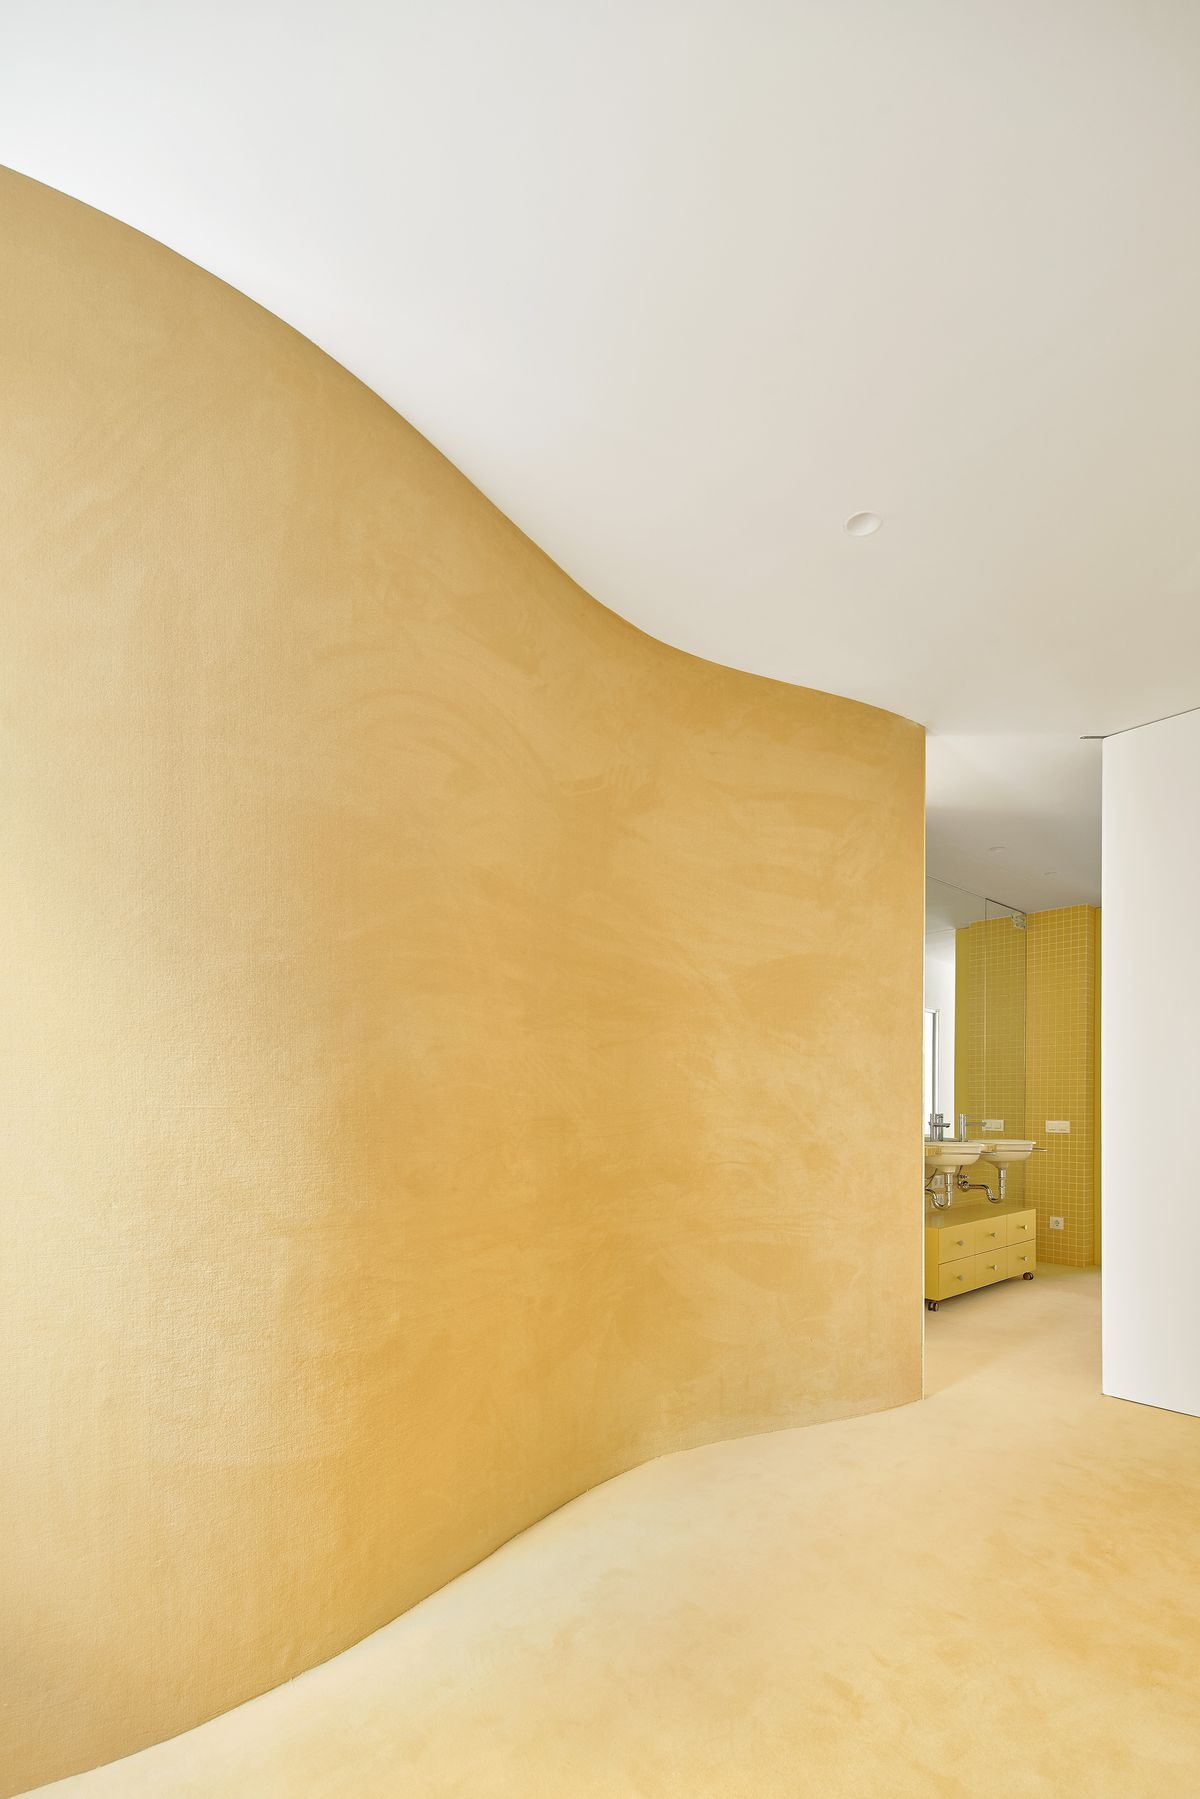 Curved yellow wall next to yellow carpet.